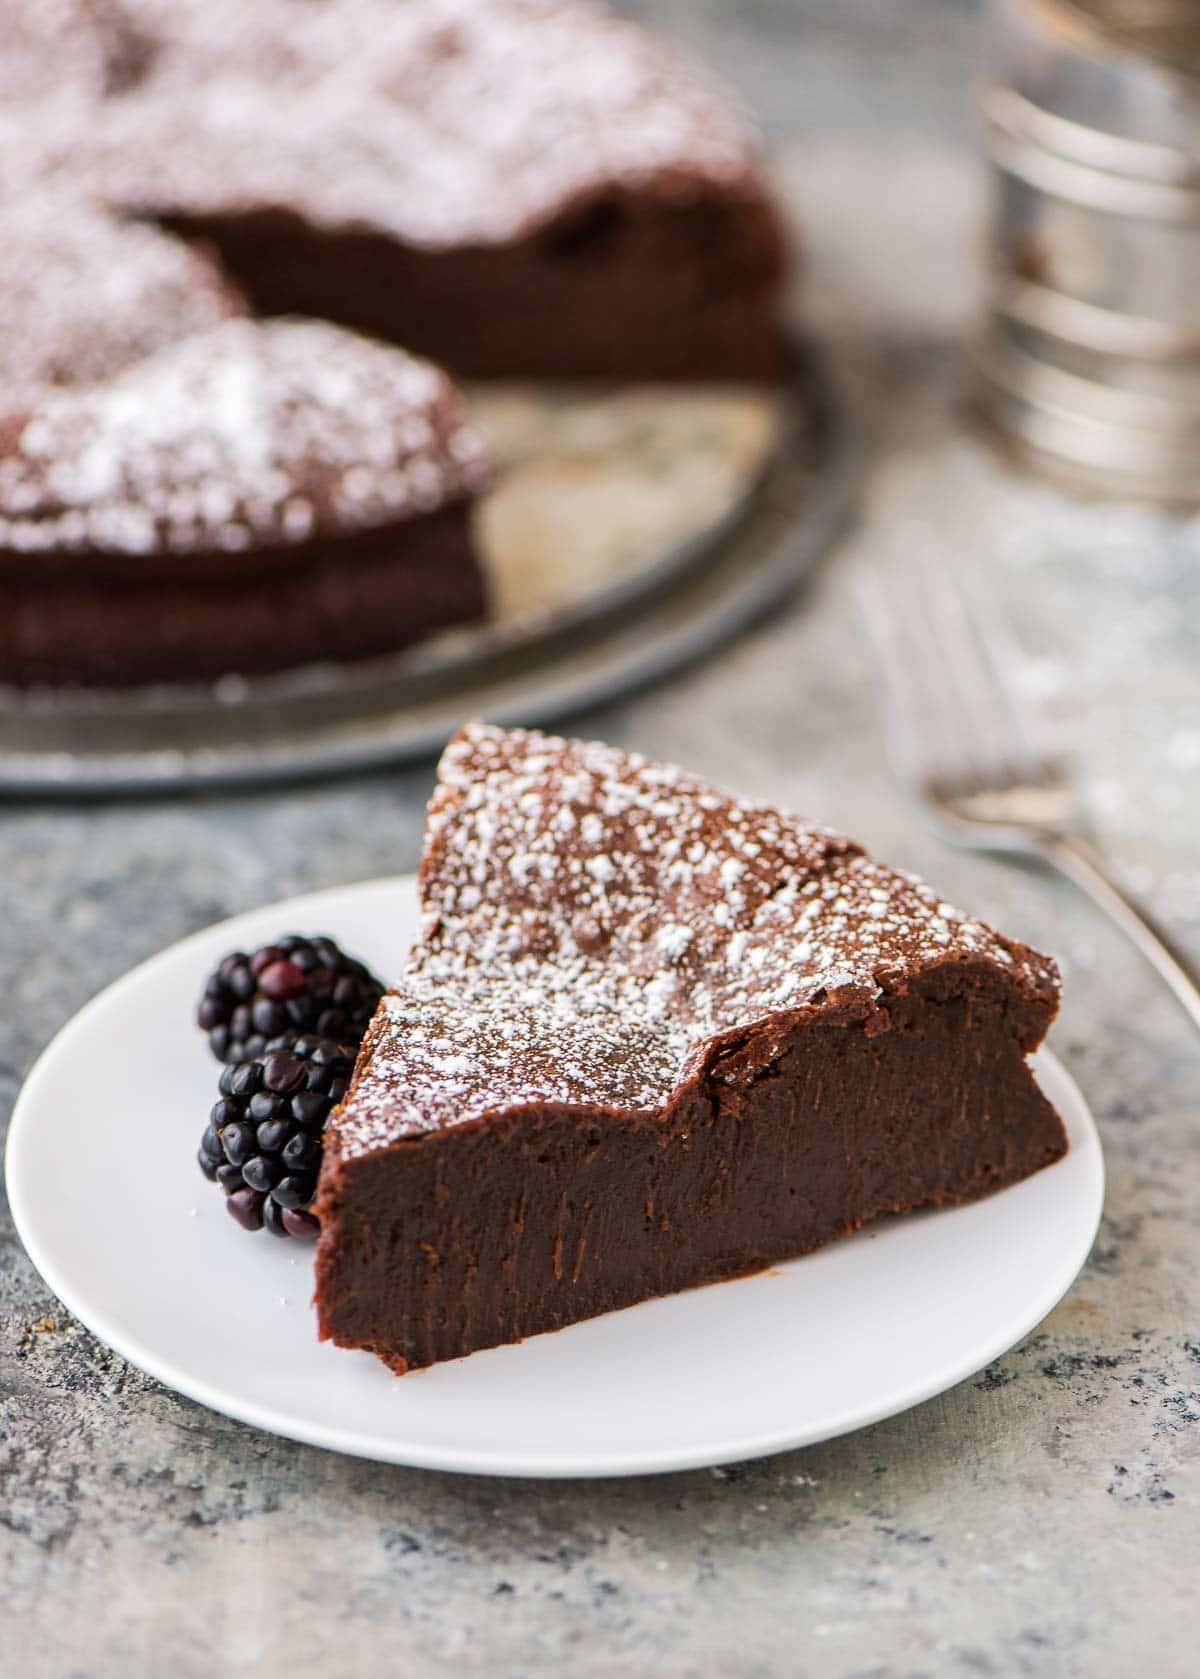 The BEST Flourless Chocolate Torte. Easy, impressive, and SO decadent. Perfect for a dinner party! {grain free and gluten free} Recipe at wellplated.com | @wellplated